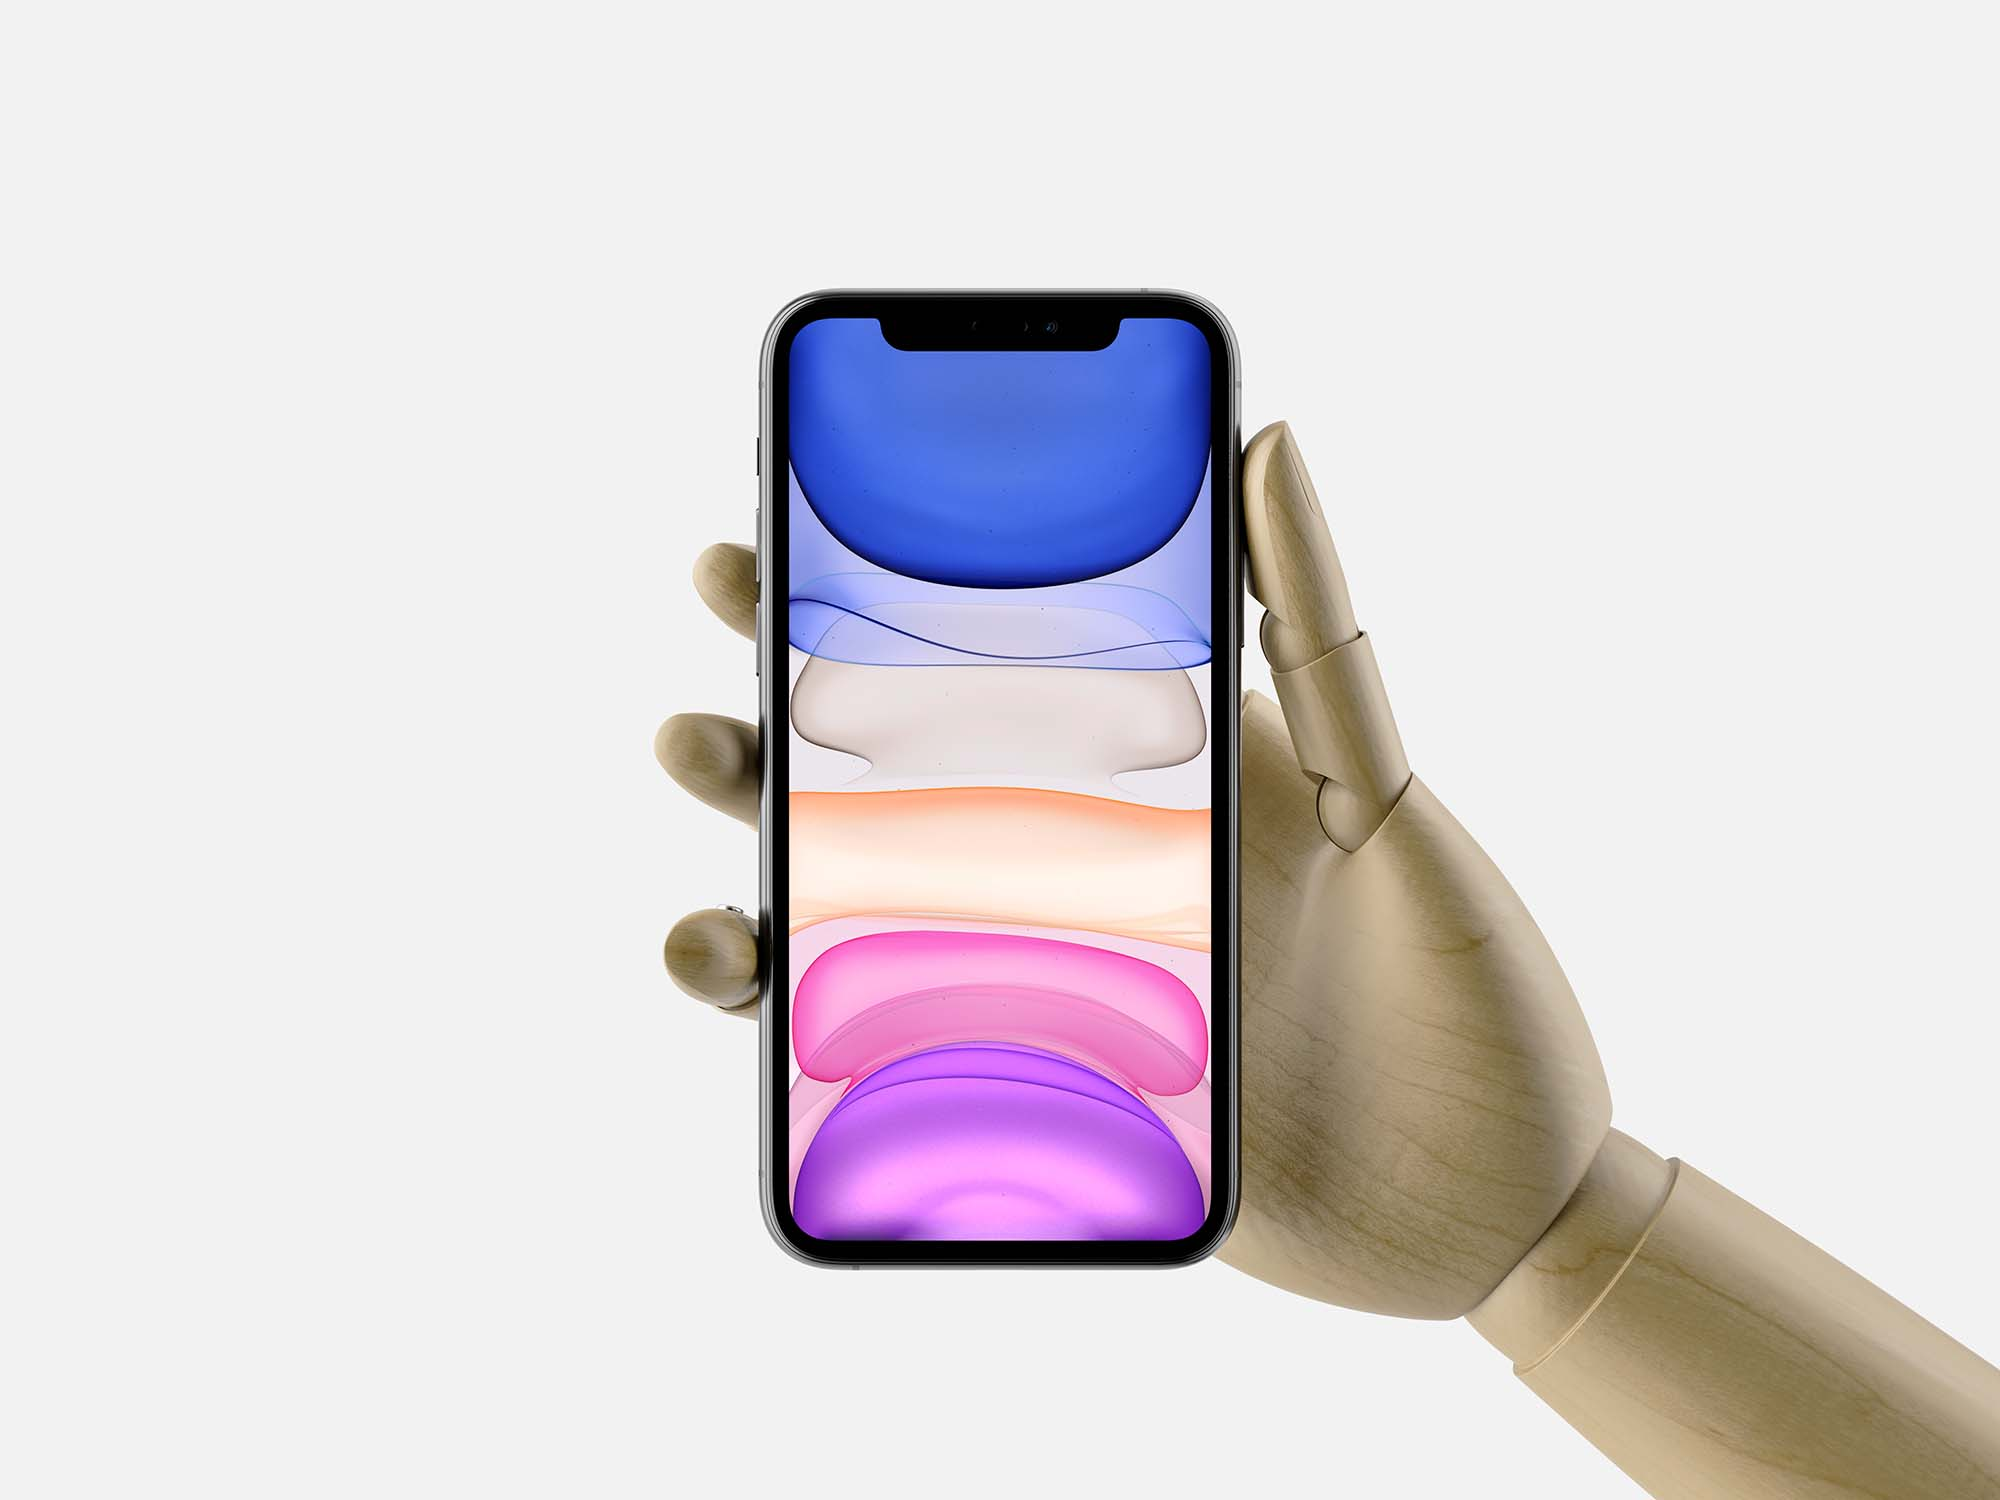 In Hand iPhone 11 Pro Max Mockup